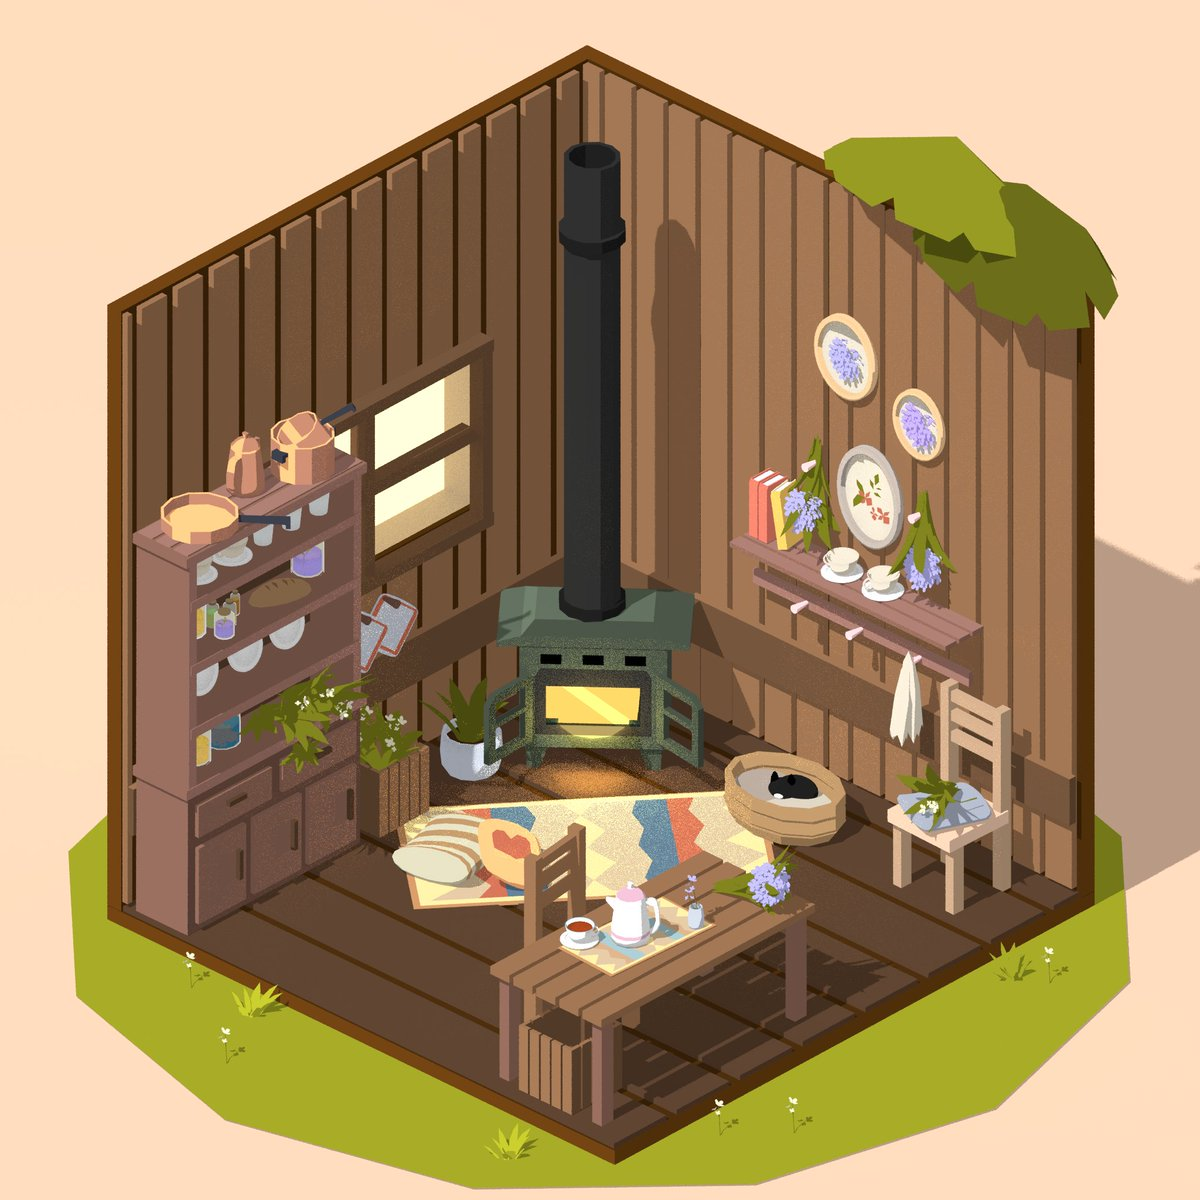 The most fun I&#39;ve had in a while, the details, the &#39;embroidery&#39;, took quite some time to poke everything out, my favourite are the bronze pans on the shelf because they are manually coloured &lt;3 #lowpoly #Blender3D #3dmodeling<br>http://pic.twitter.com/5btKGmDhUb